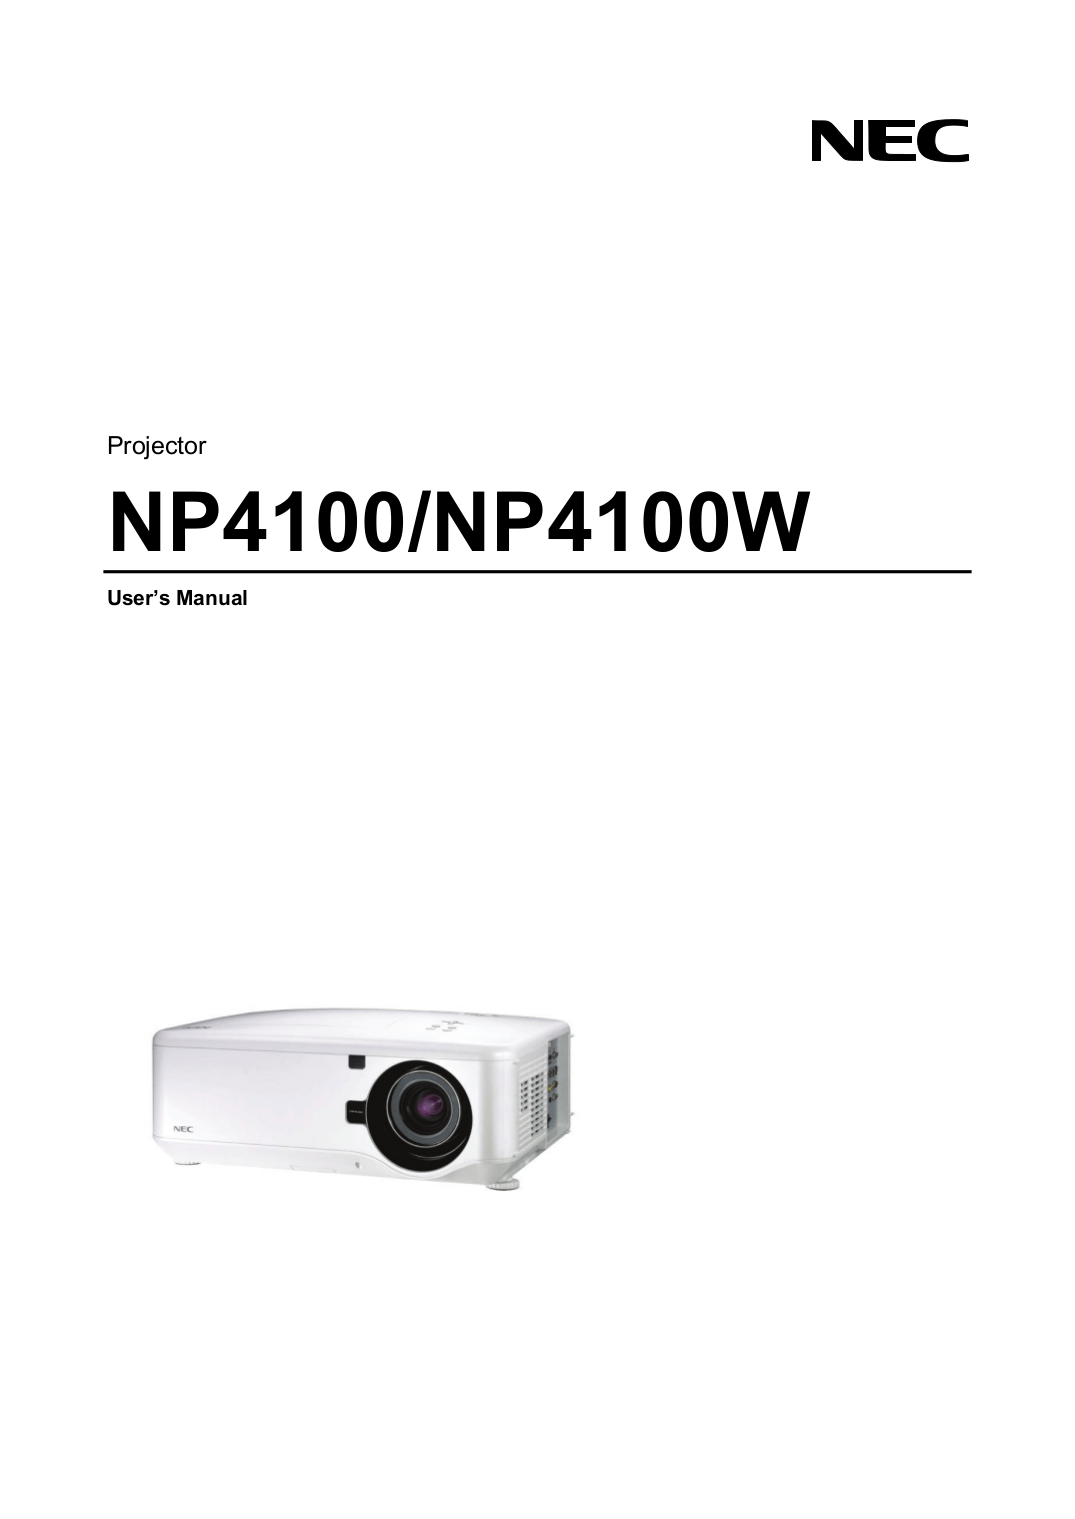 Download free pdf for NEC NP4100W Projector manual